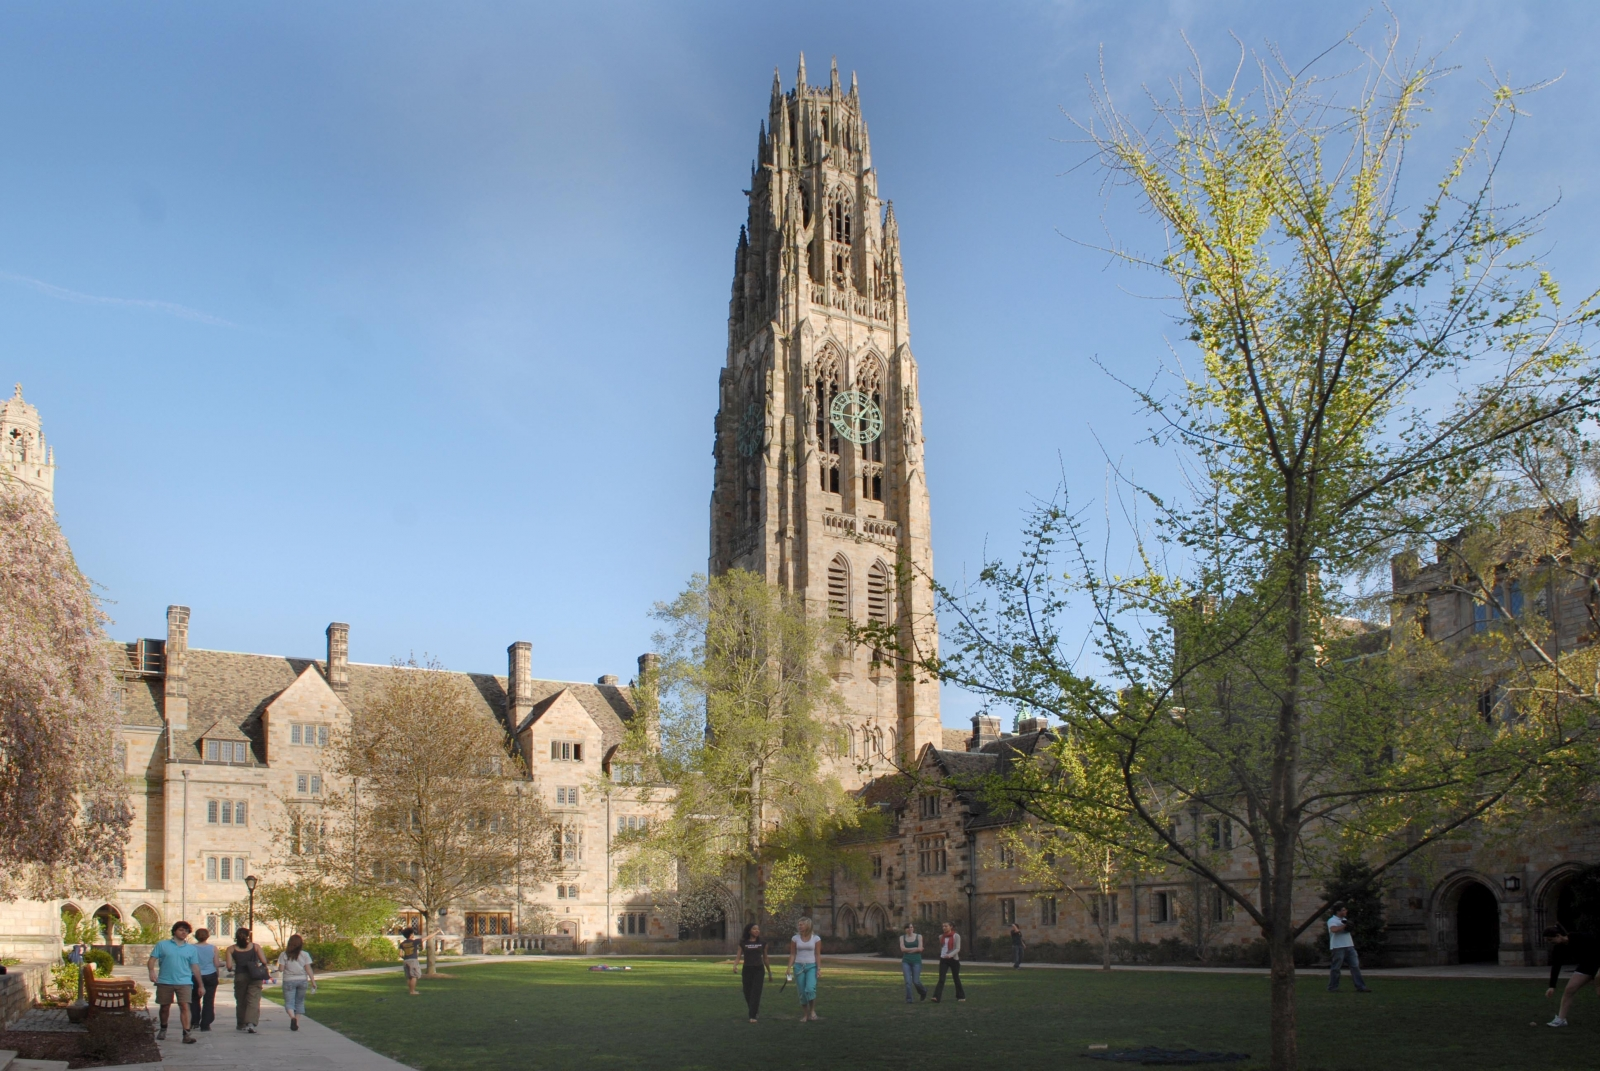 Branford College - Harkness Tower